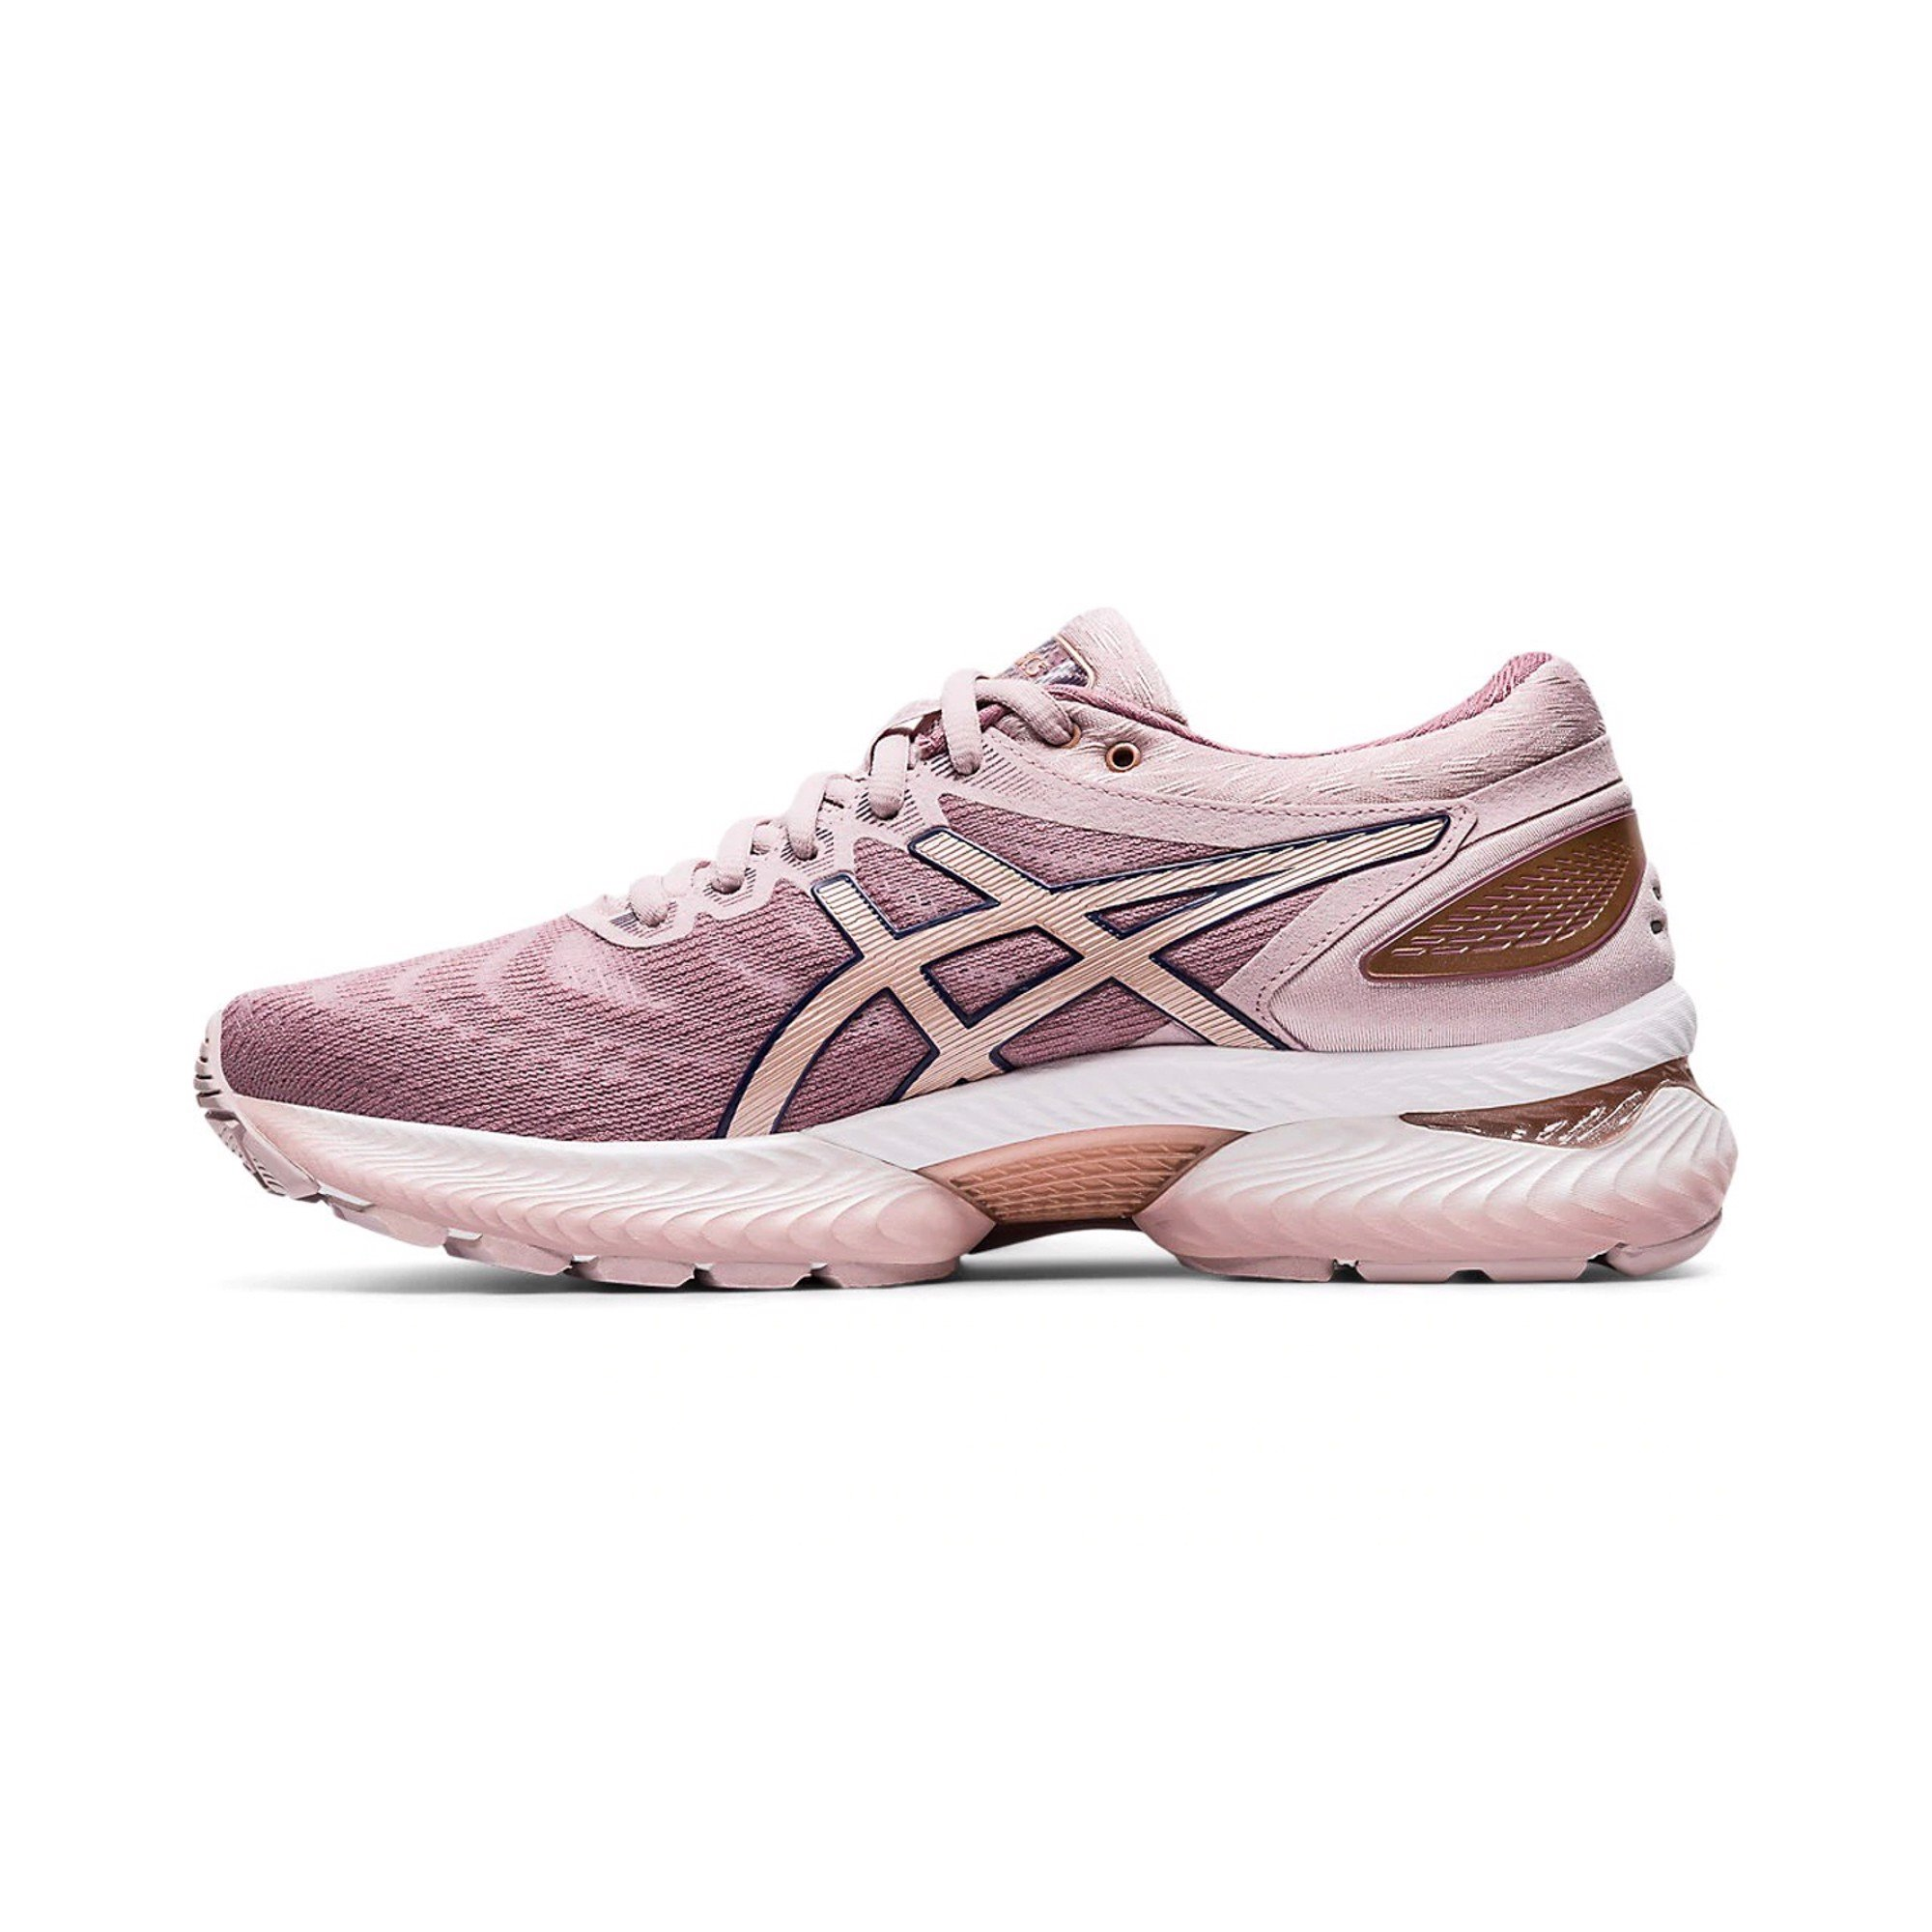 ASICS Gel-Nimbus 22 'Rose Gold'